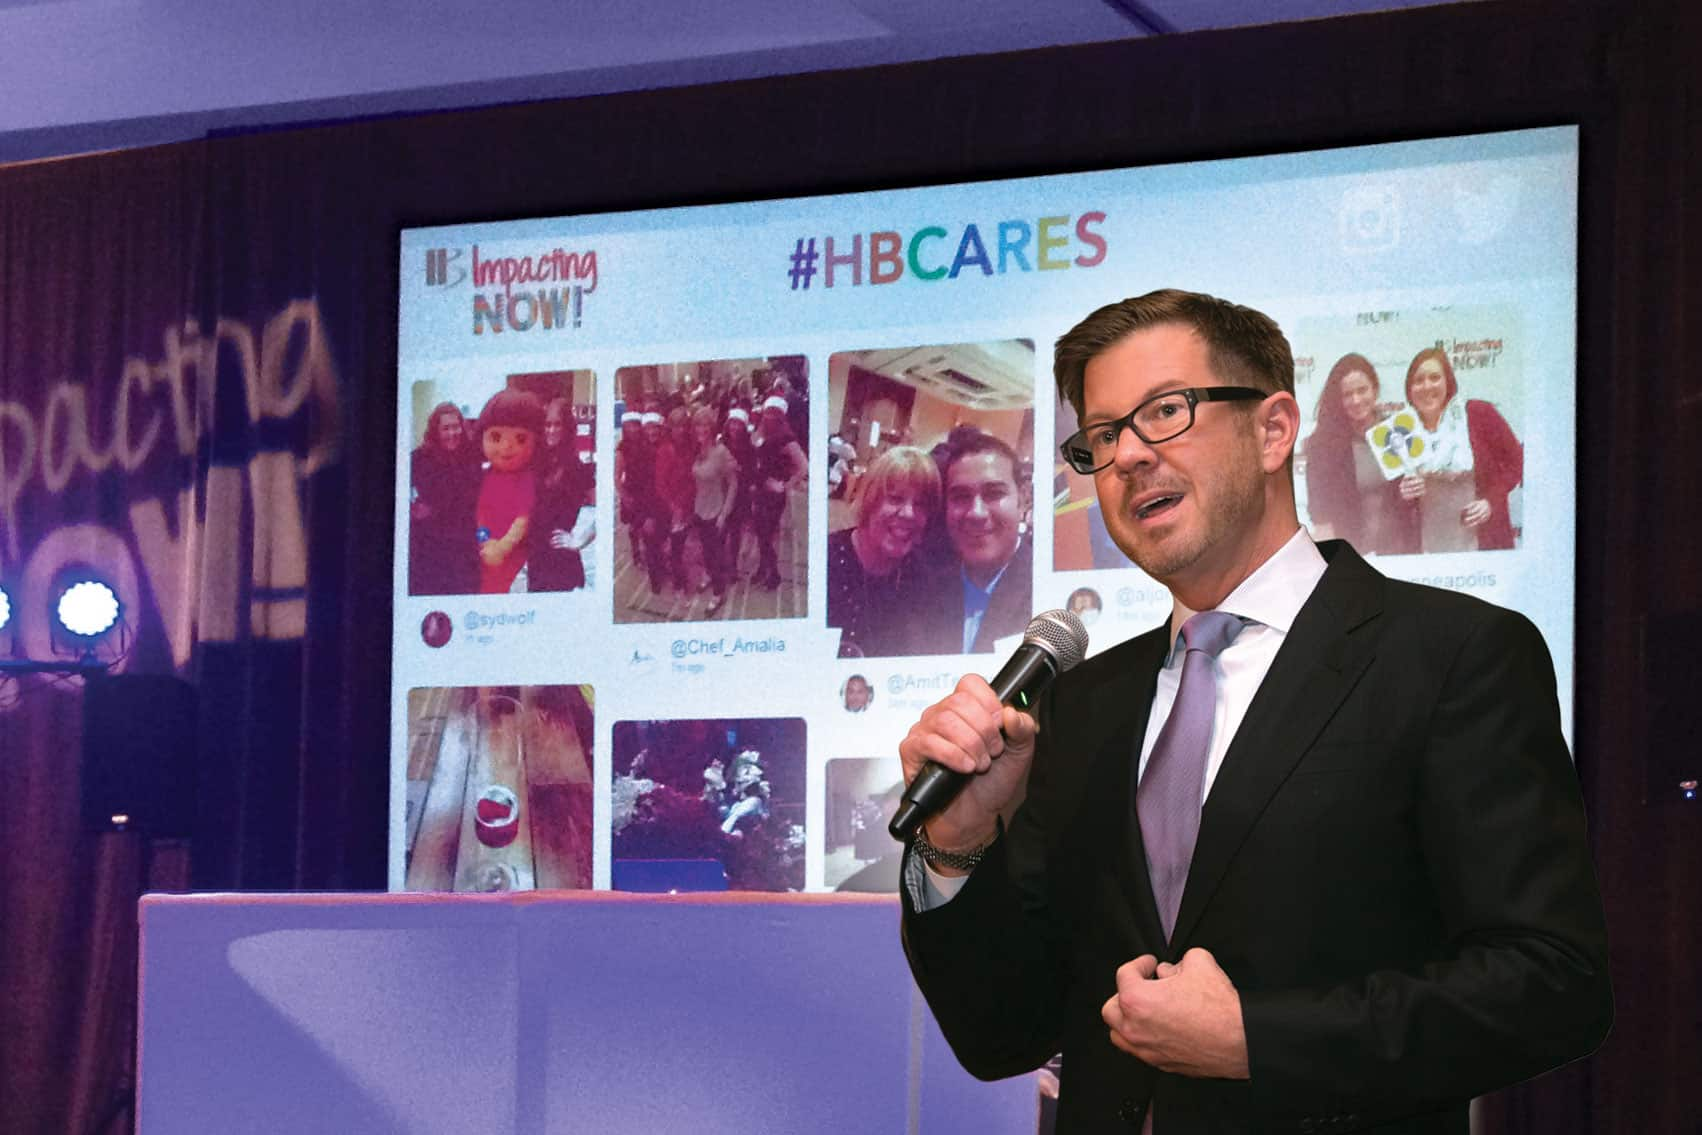 News-HB-Cares-Impacting-NOW!